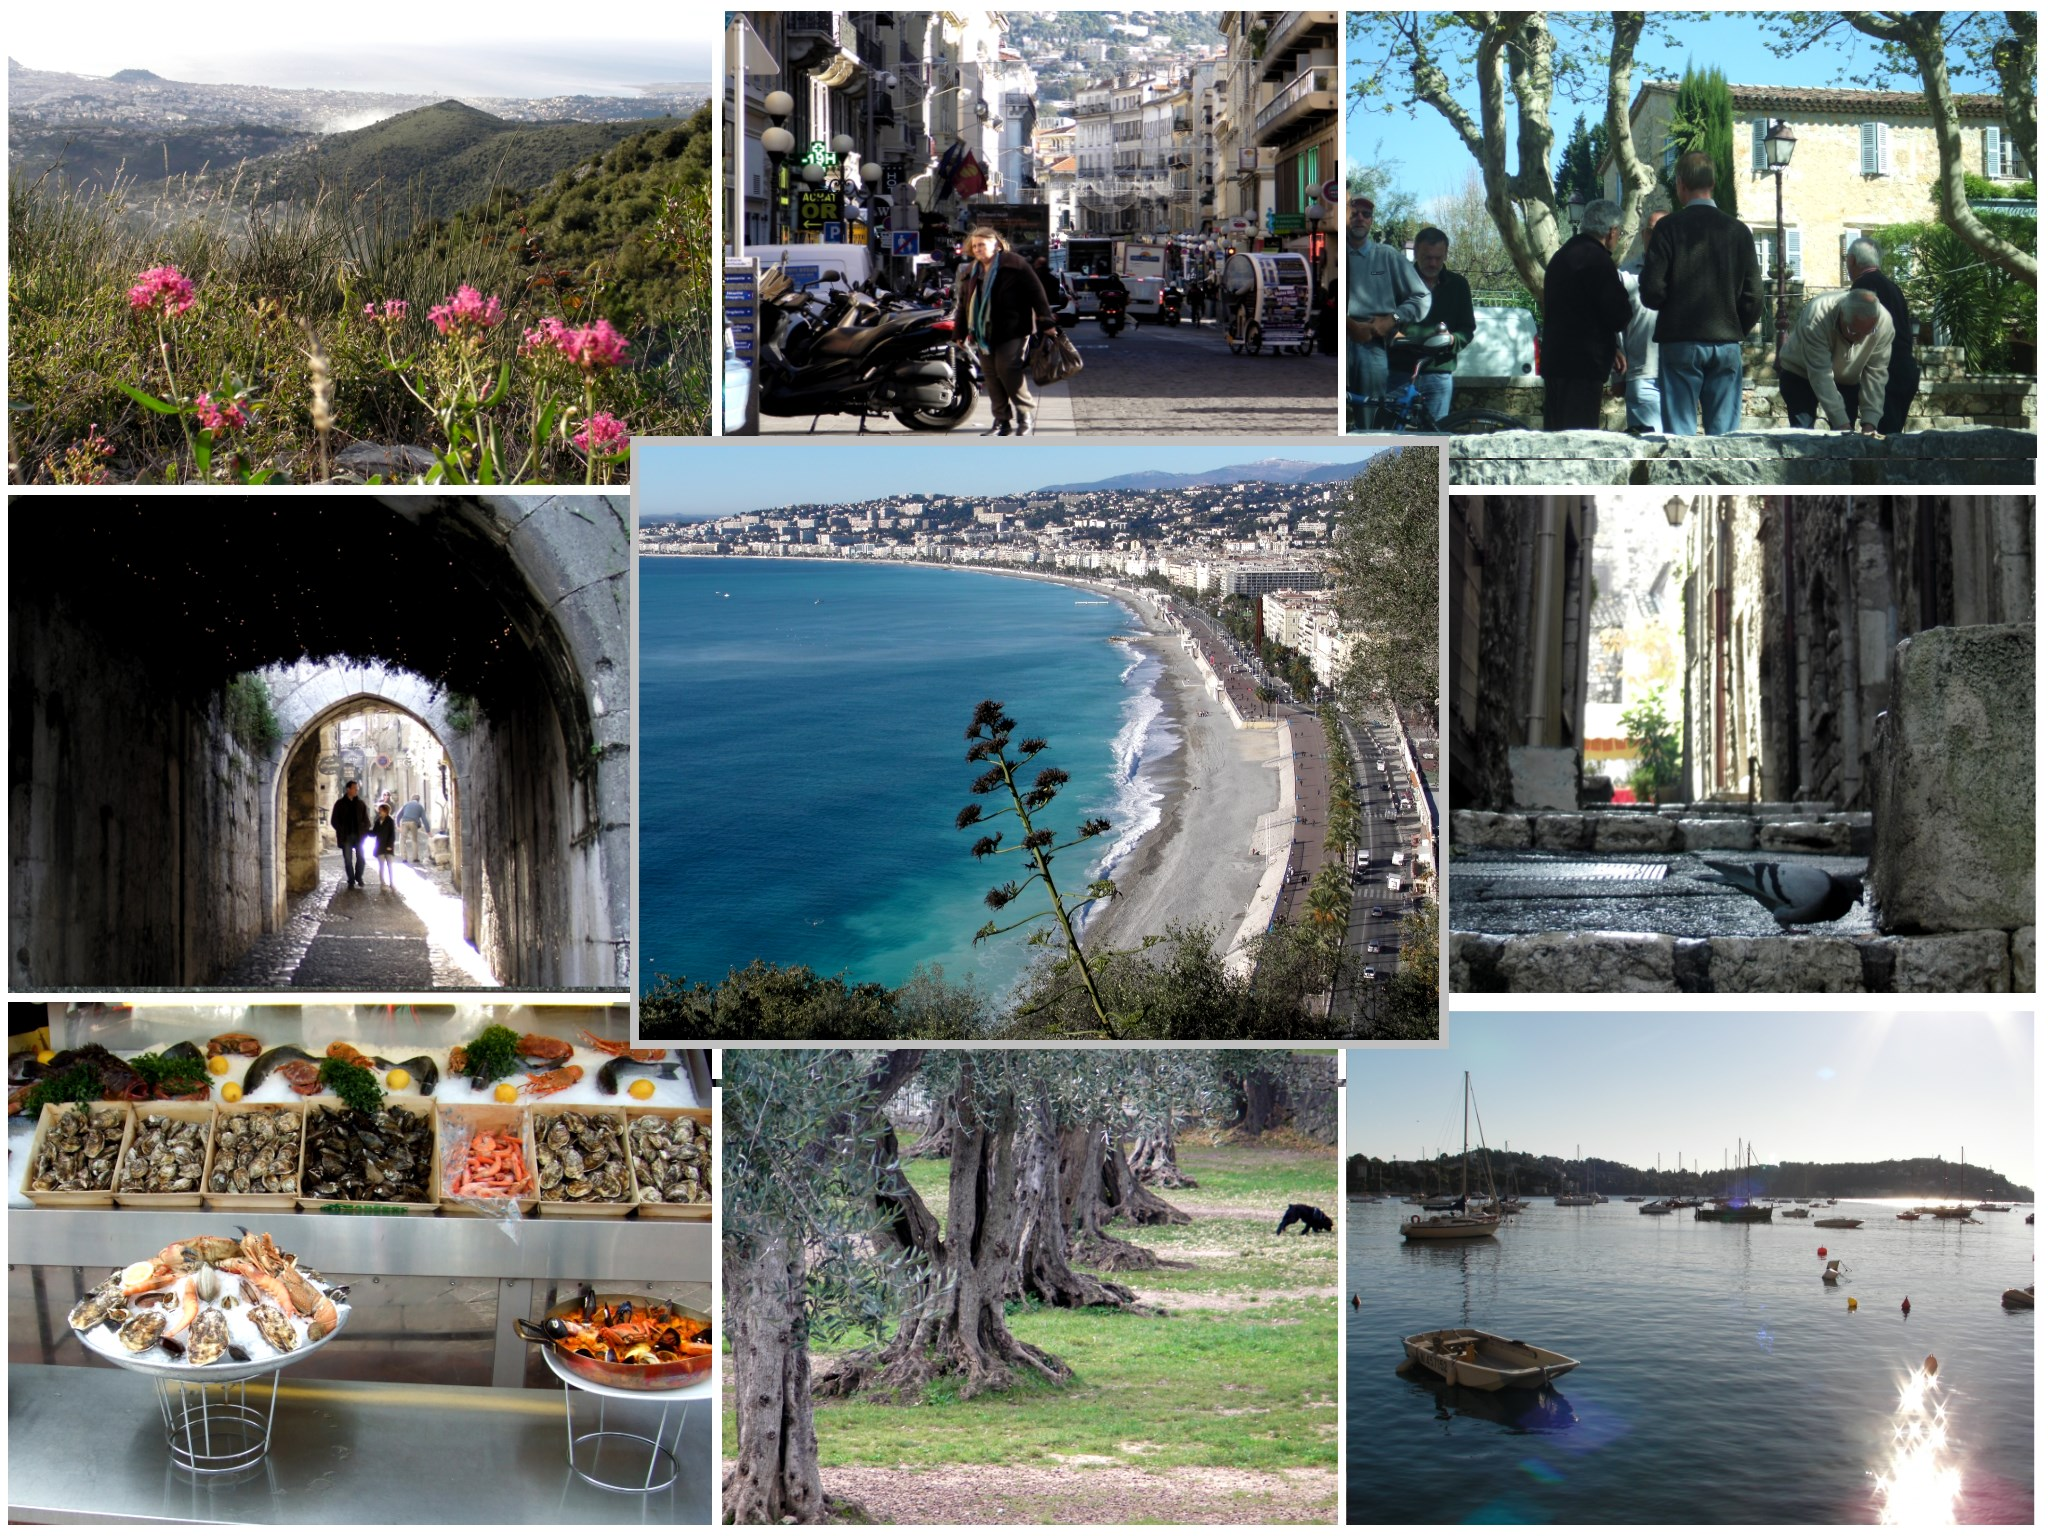 photos from book The Gems of Nice and the French Riviera